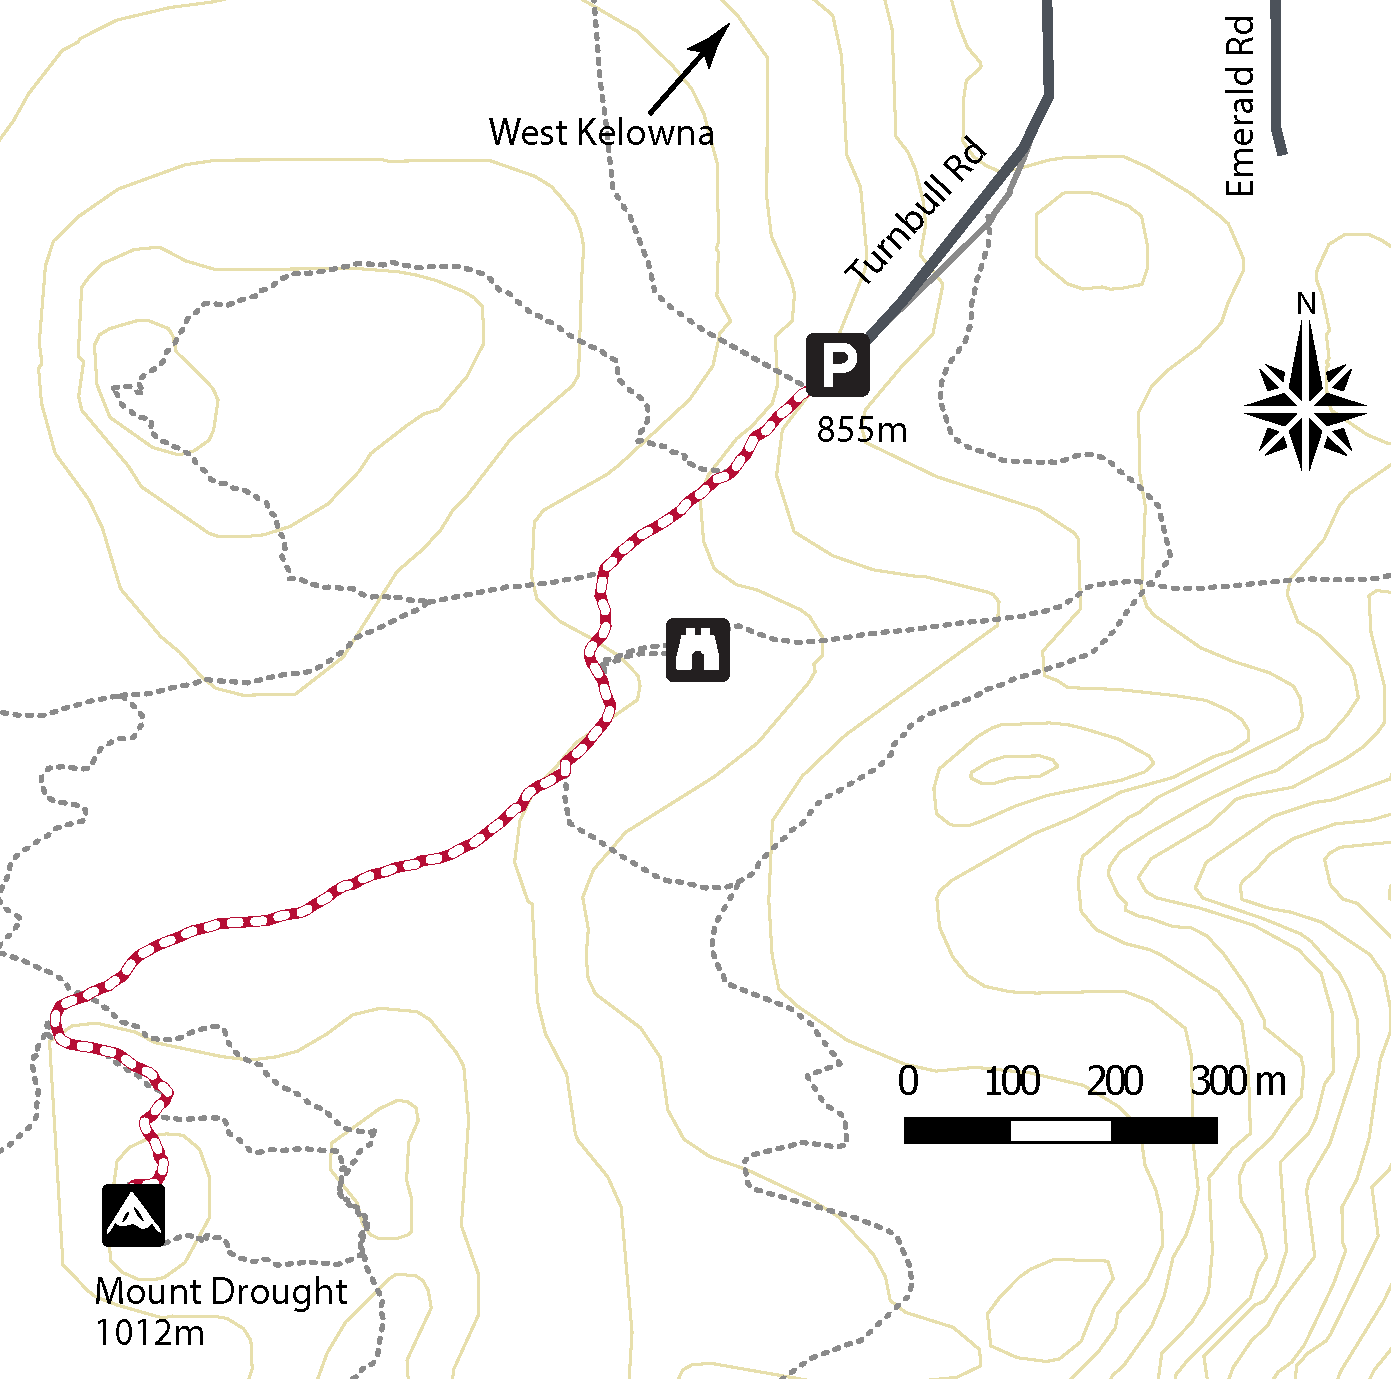 Trail map around Mt. Drought Summit